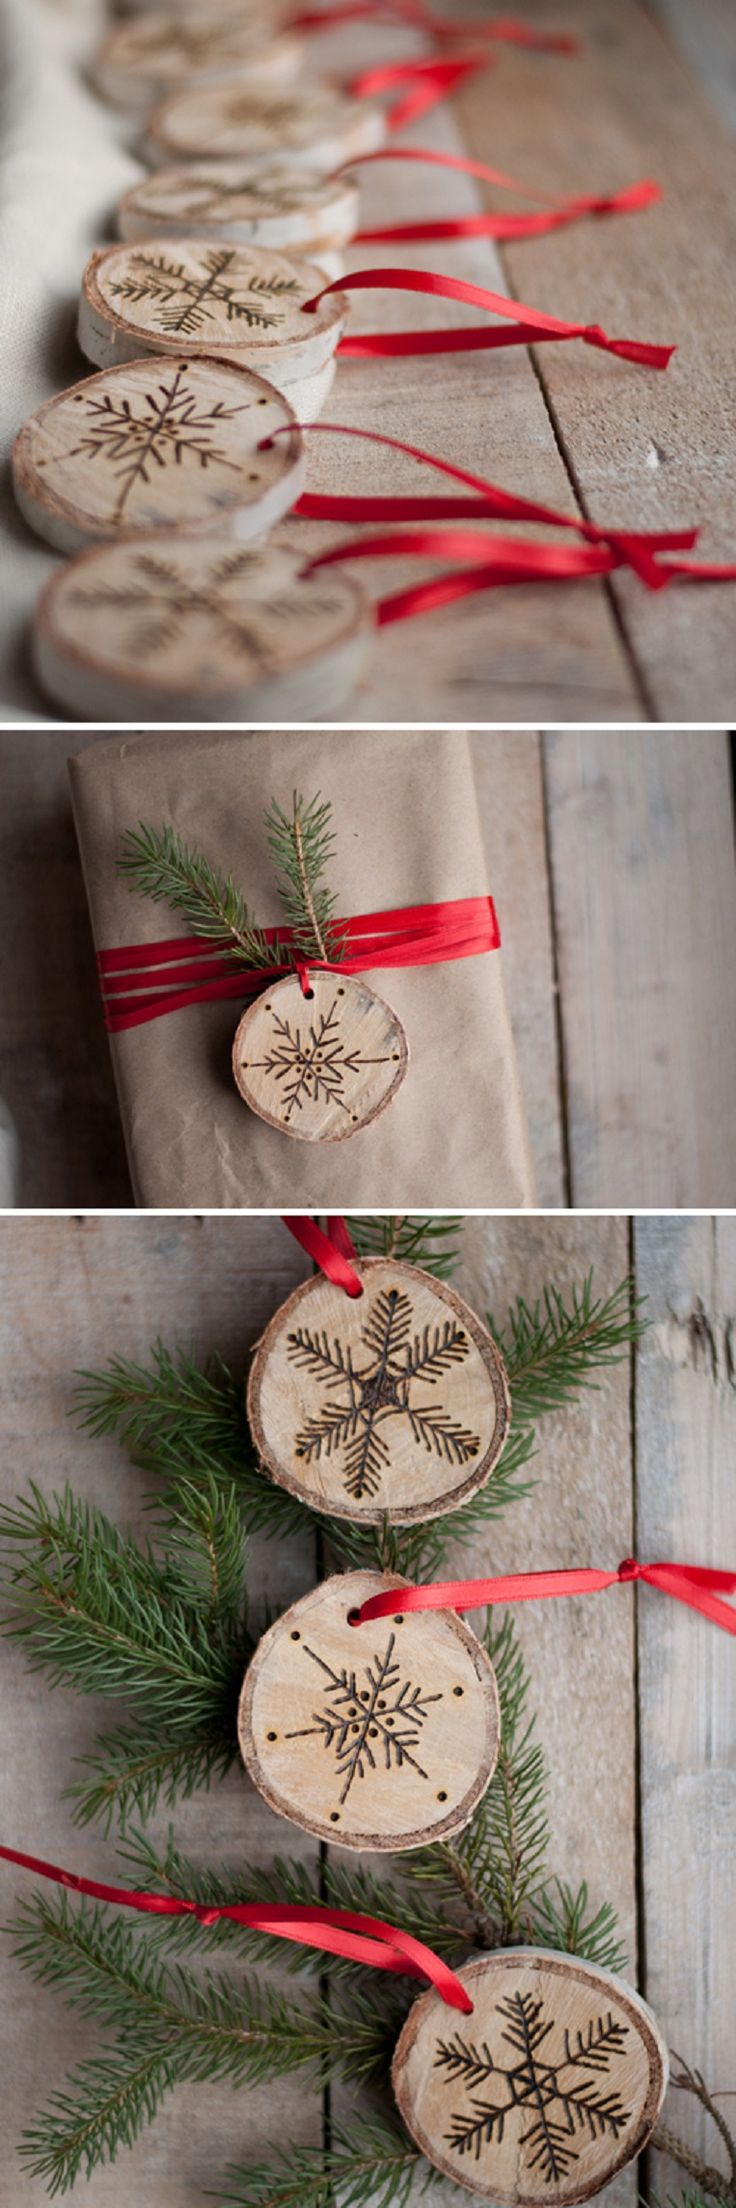 DIY Etched Snowflake Ornaments in Birch - 15 Beautiful DIY Snowflake Decorations for Winter | GleamItUp